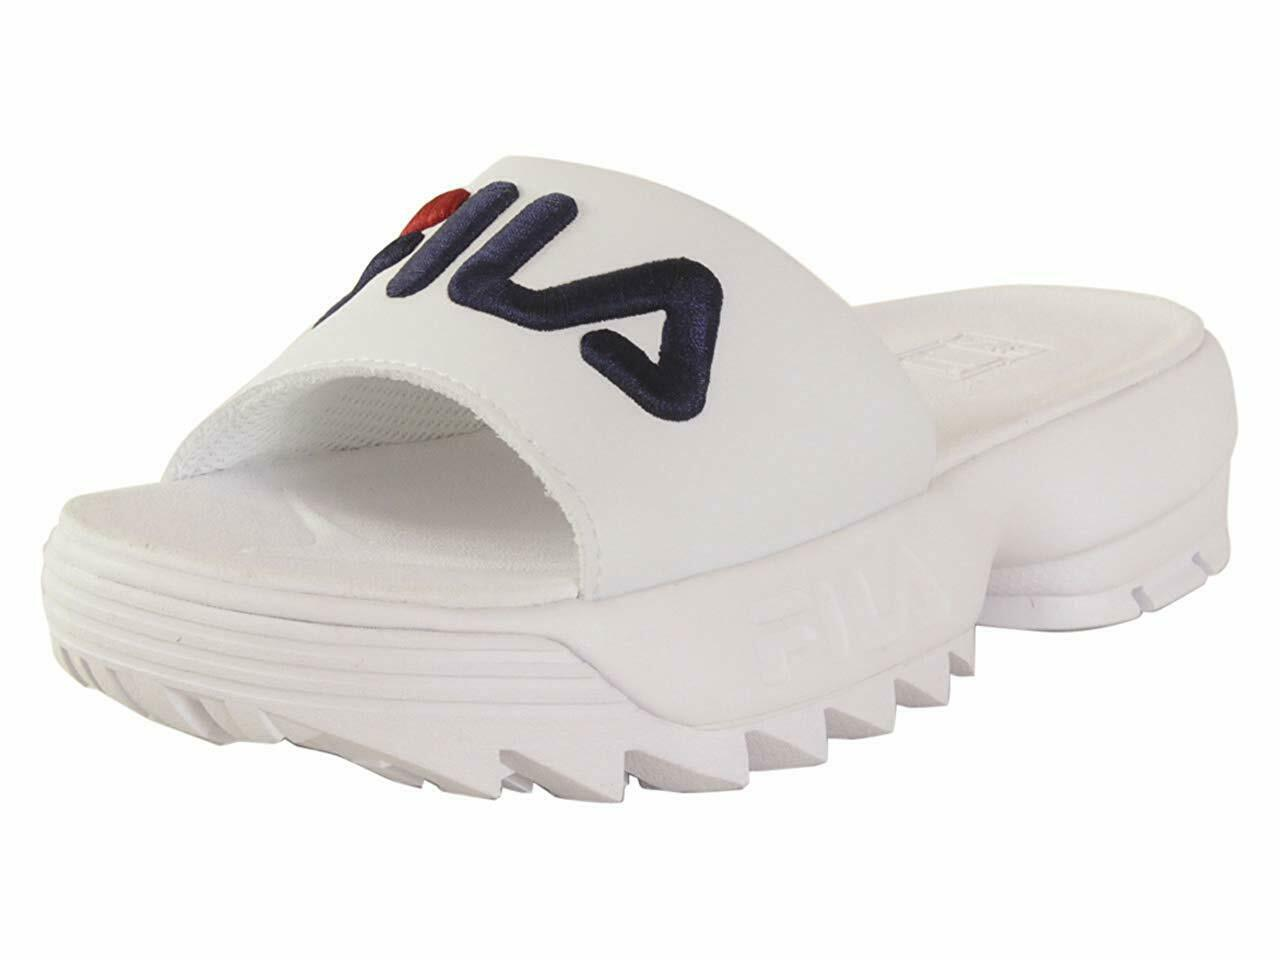 FILA DISRUPTOR BOLD SLIDE WHITE NAVY RED 5SM00079 125 WOMENS US SIZES